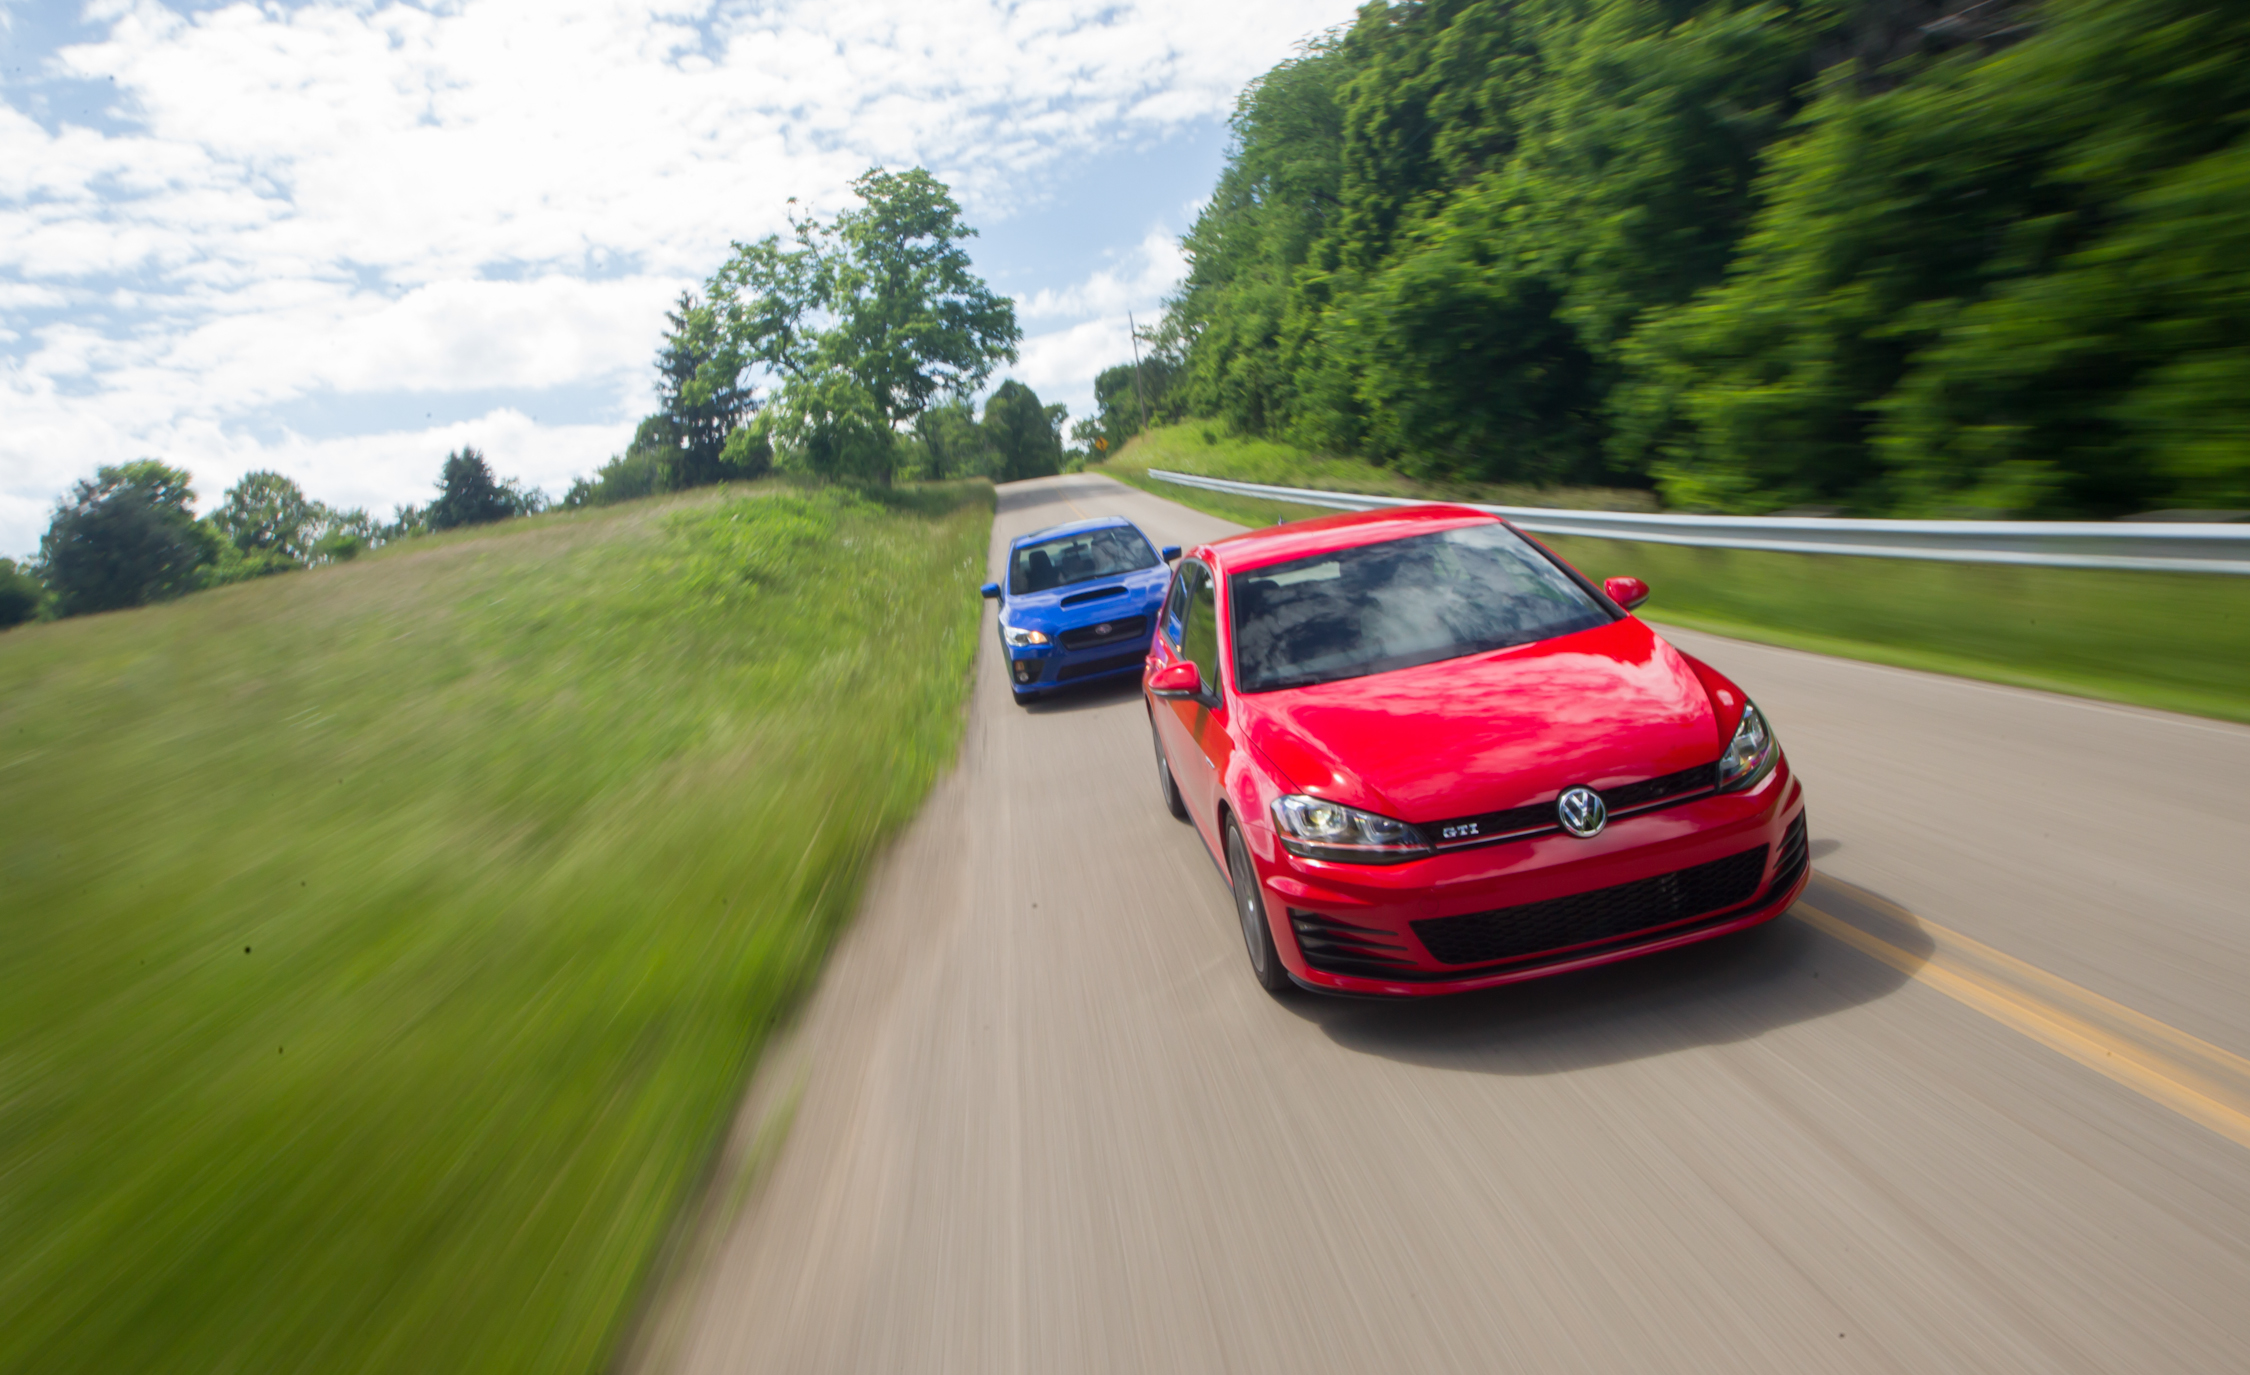 2015 Subaru WRX And 2015 Volkswagen GTI 5 Door (Photo 2 of 55)